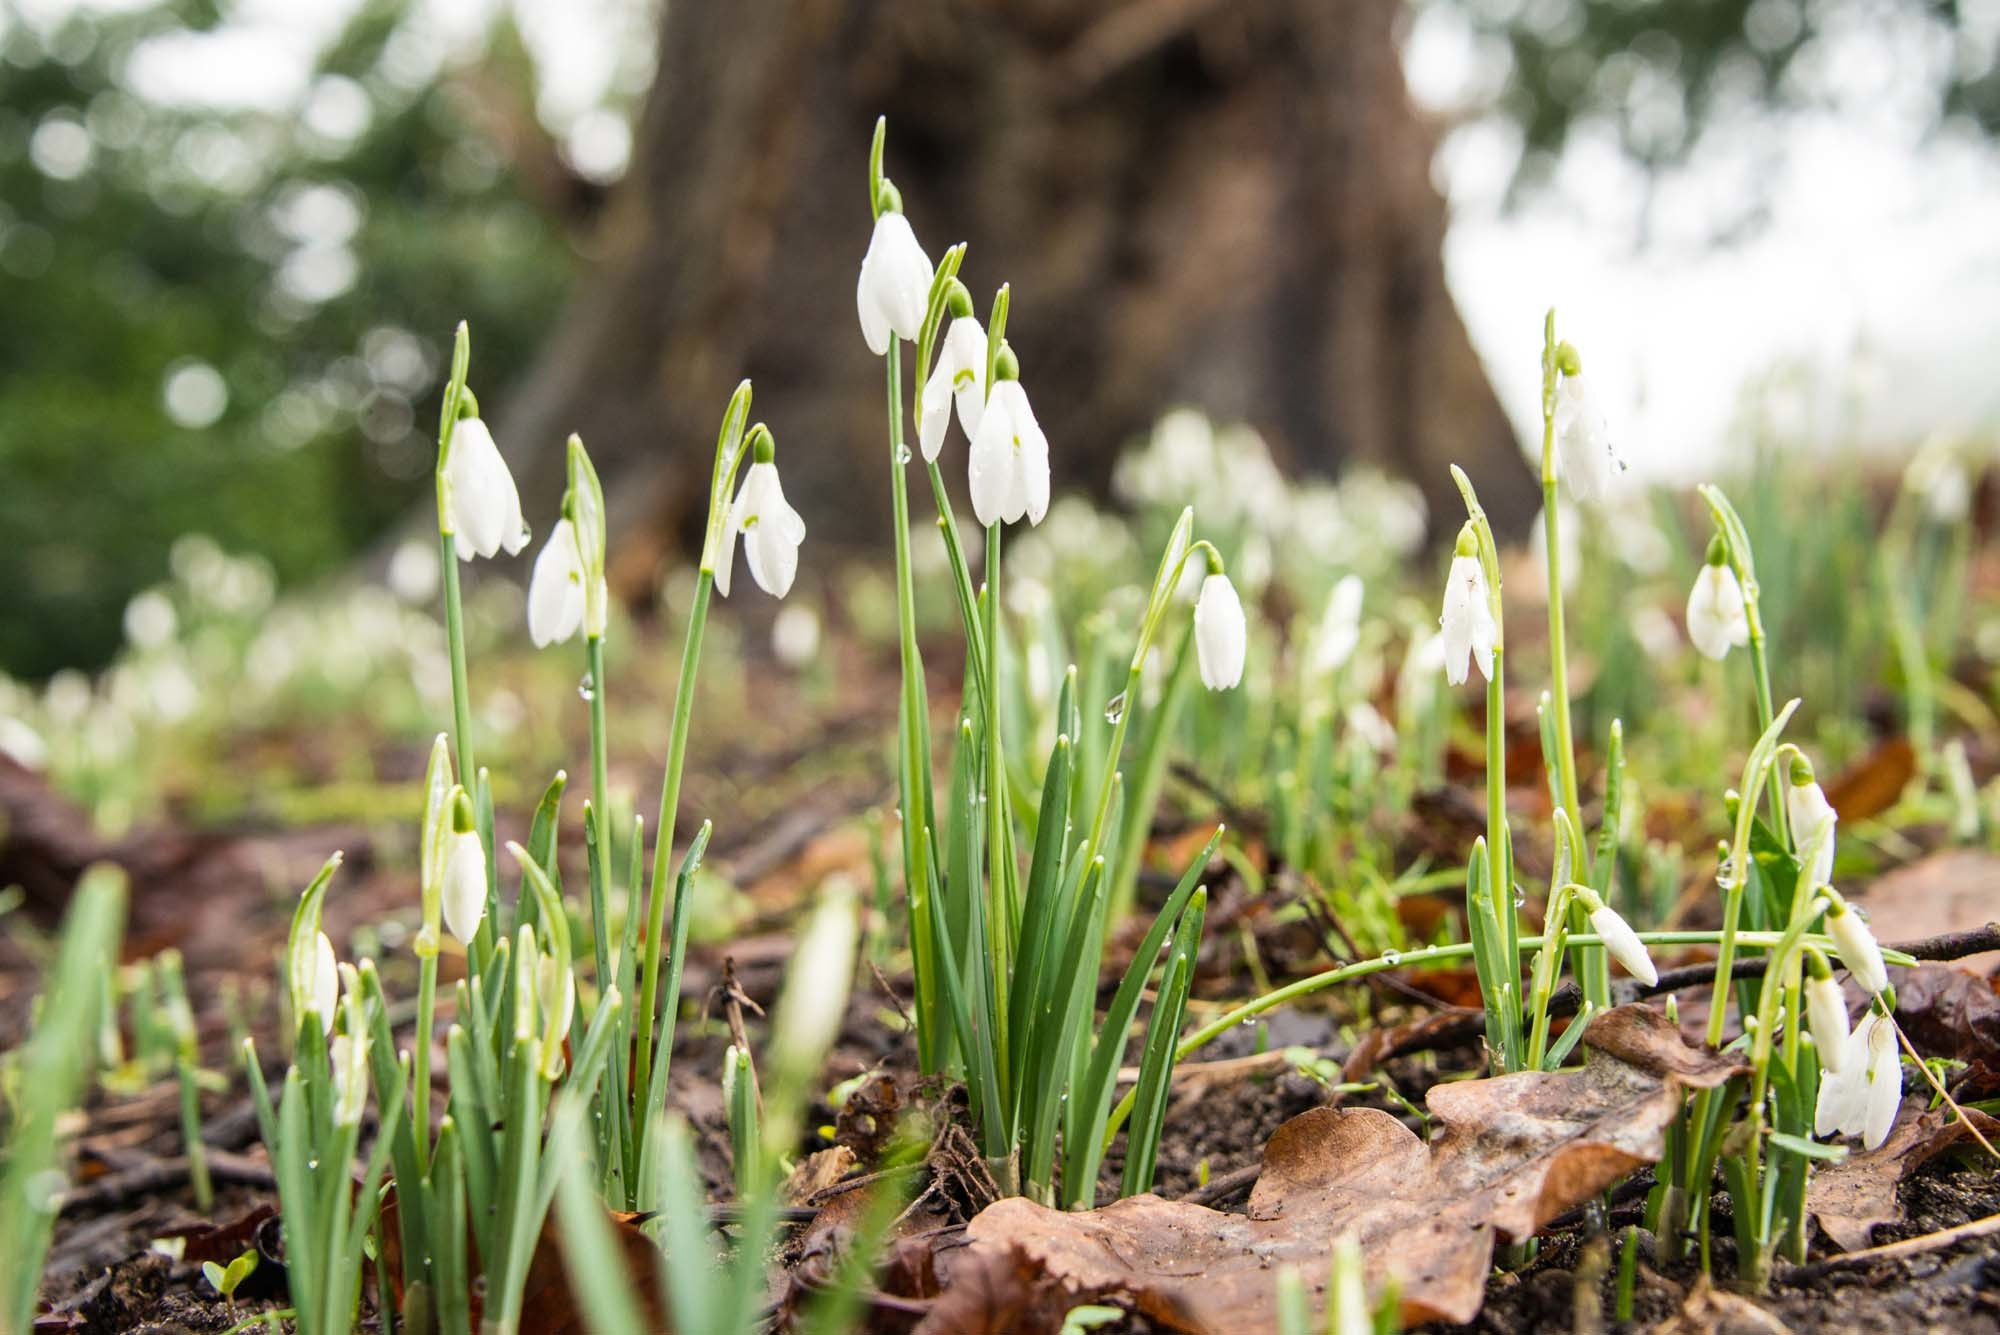 Snowdrops like these will be displayed